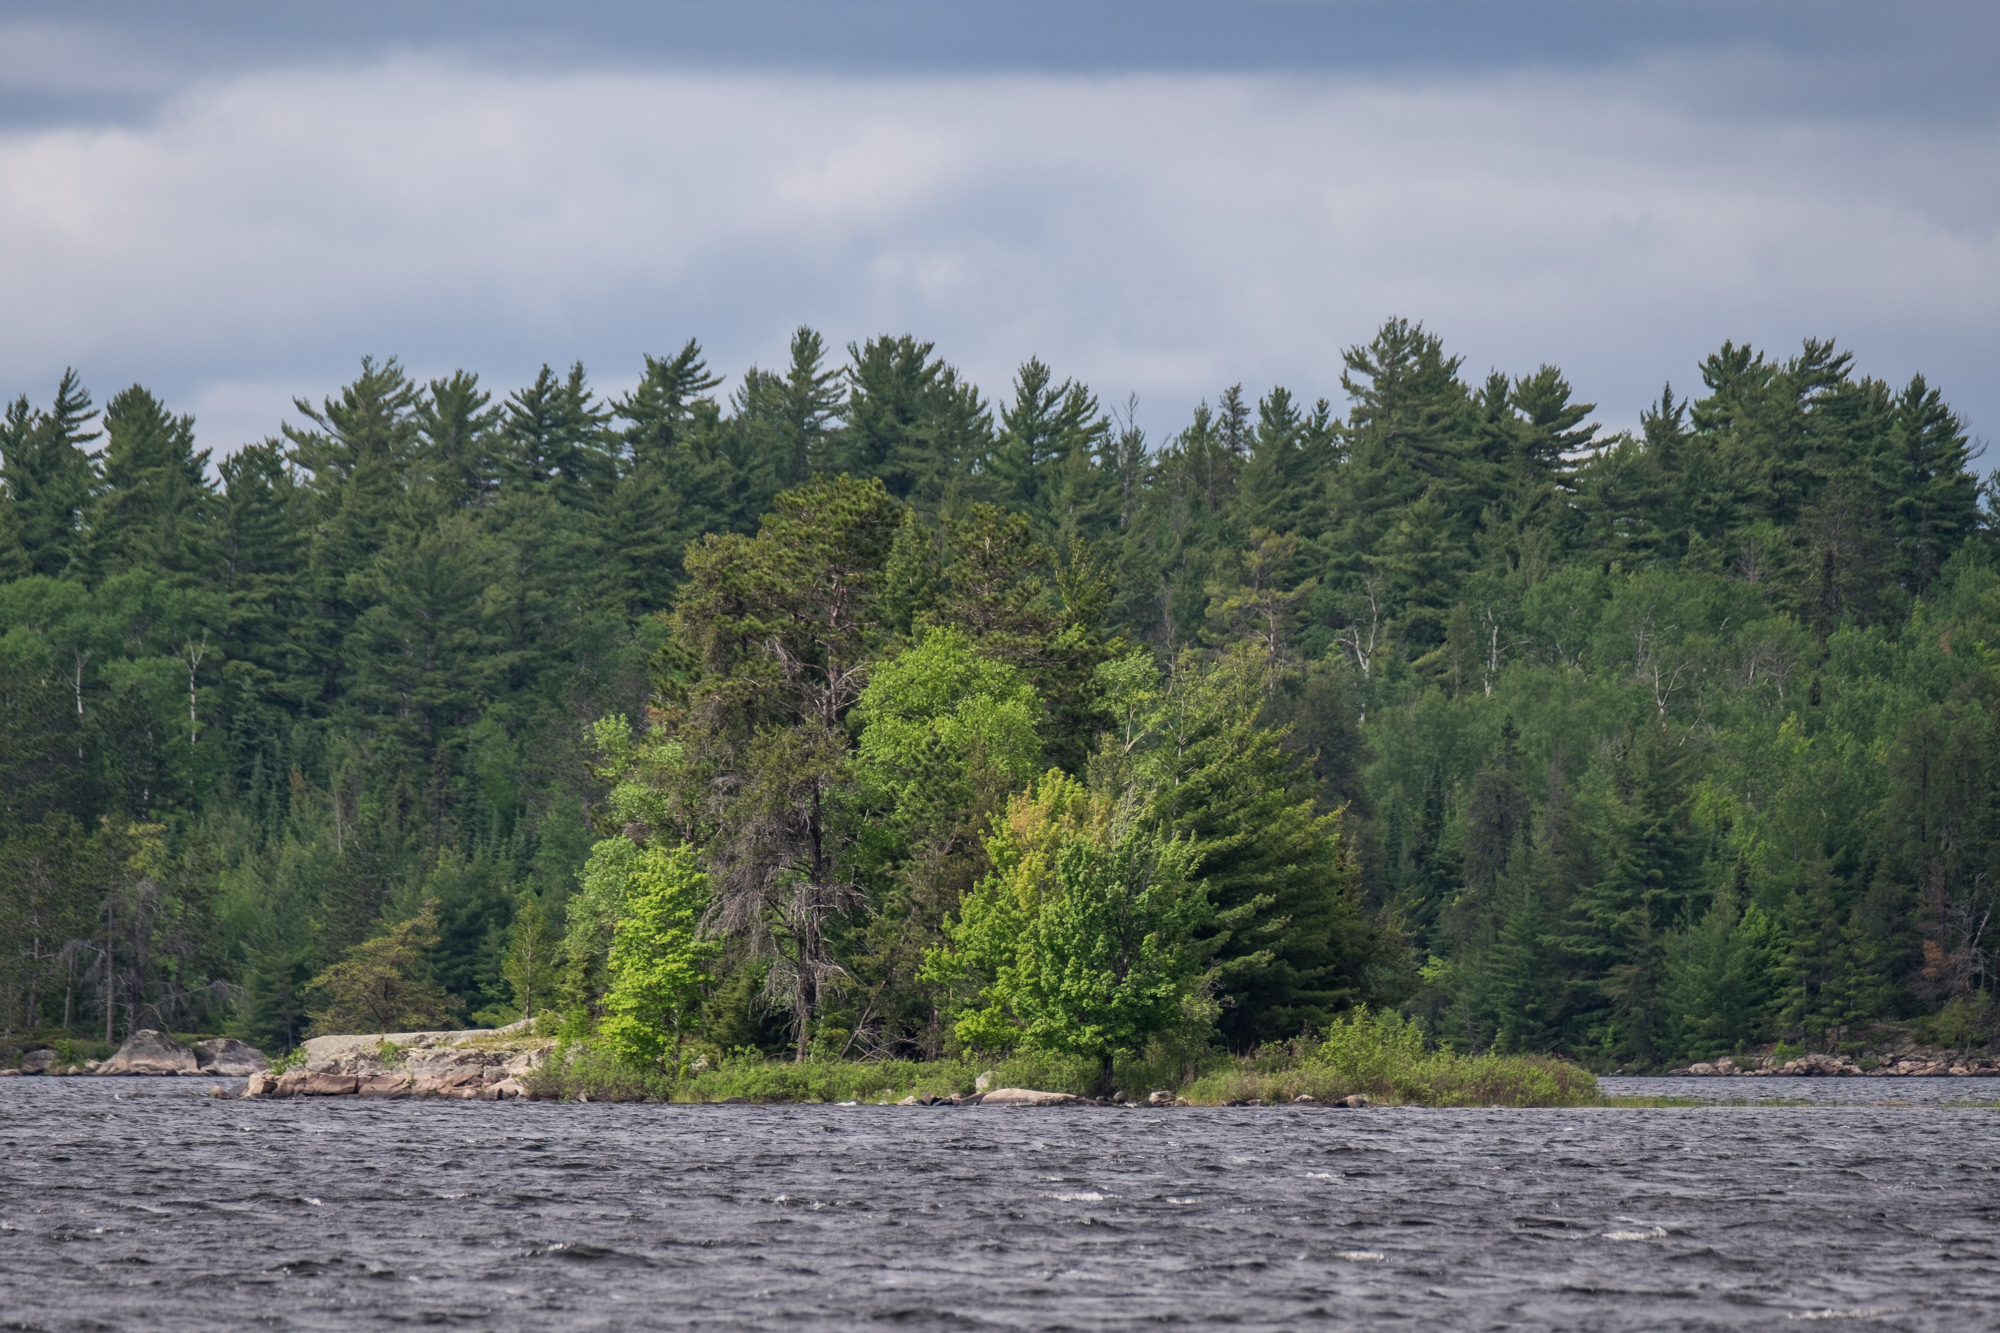 Voyageurs National Park is a wild waterland on the Minnesota/Canada border where anglers, campers, paddlers, and boaters from all over the world find solitude in the northern lakes region.